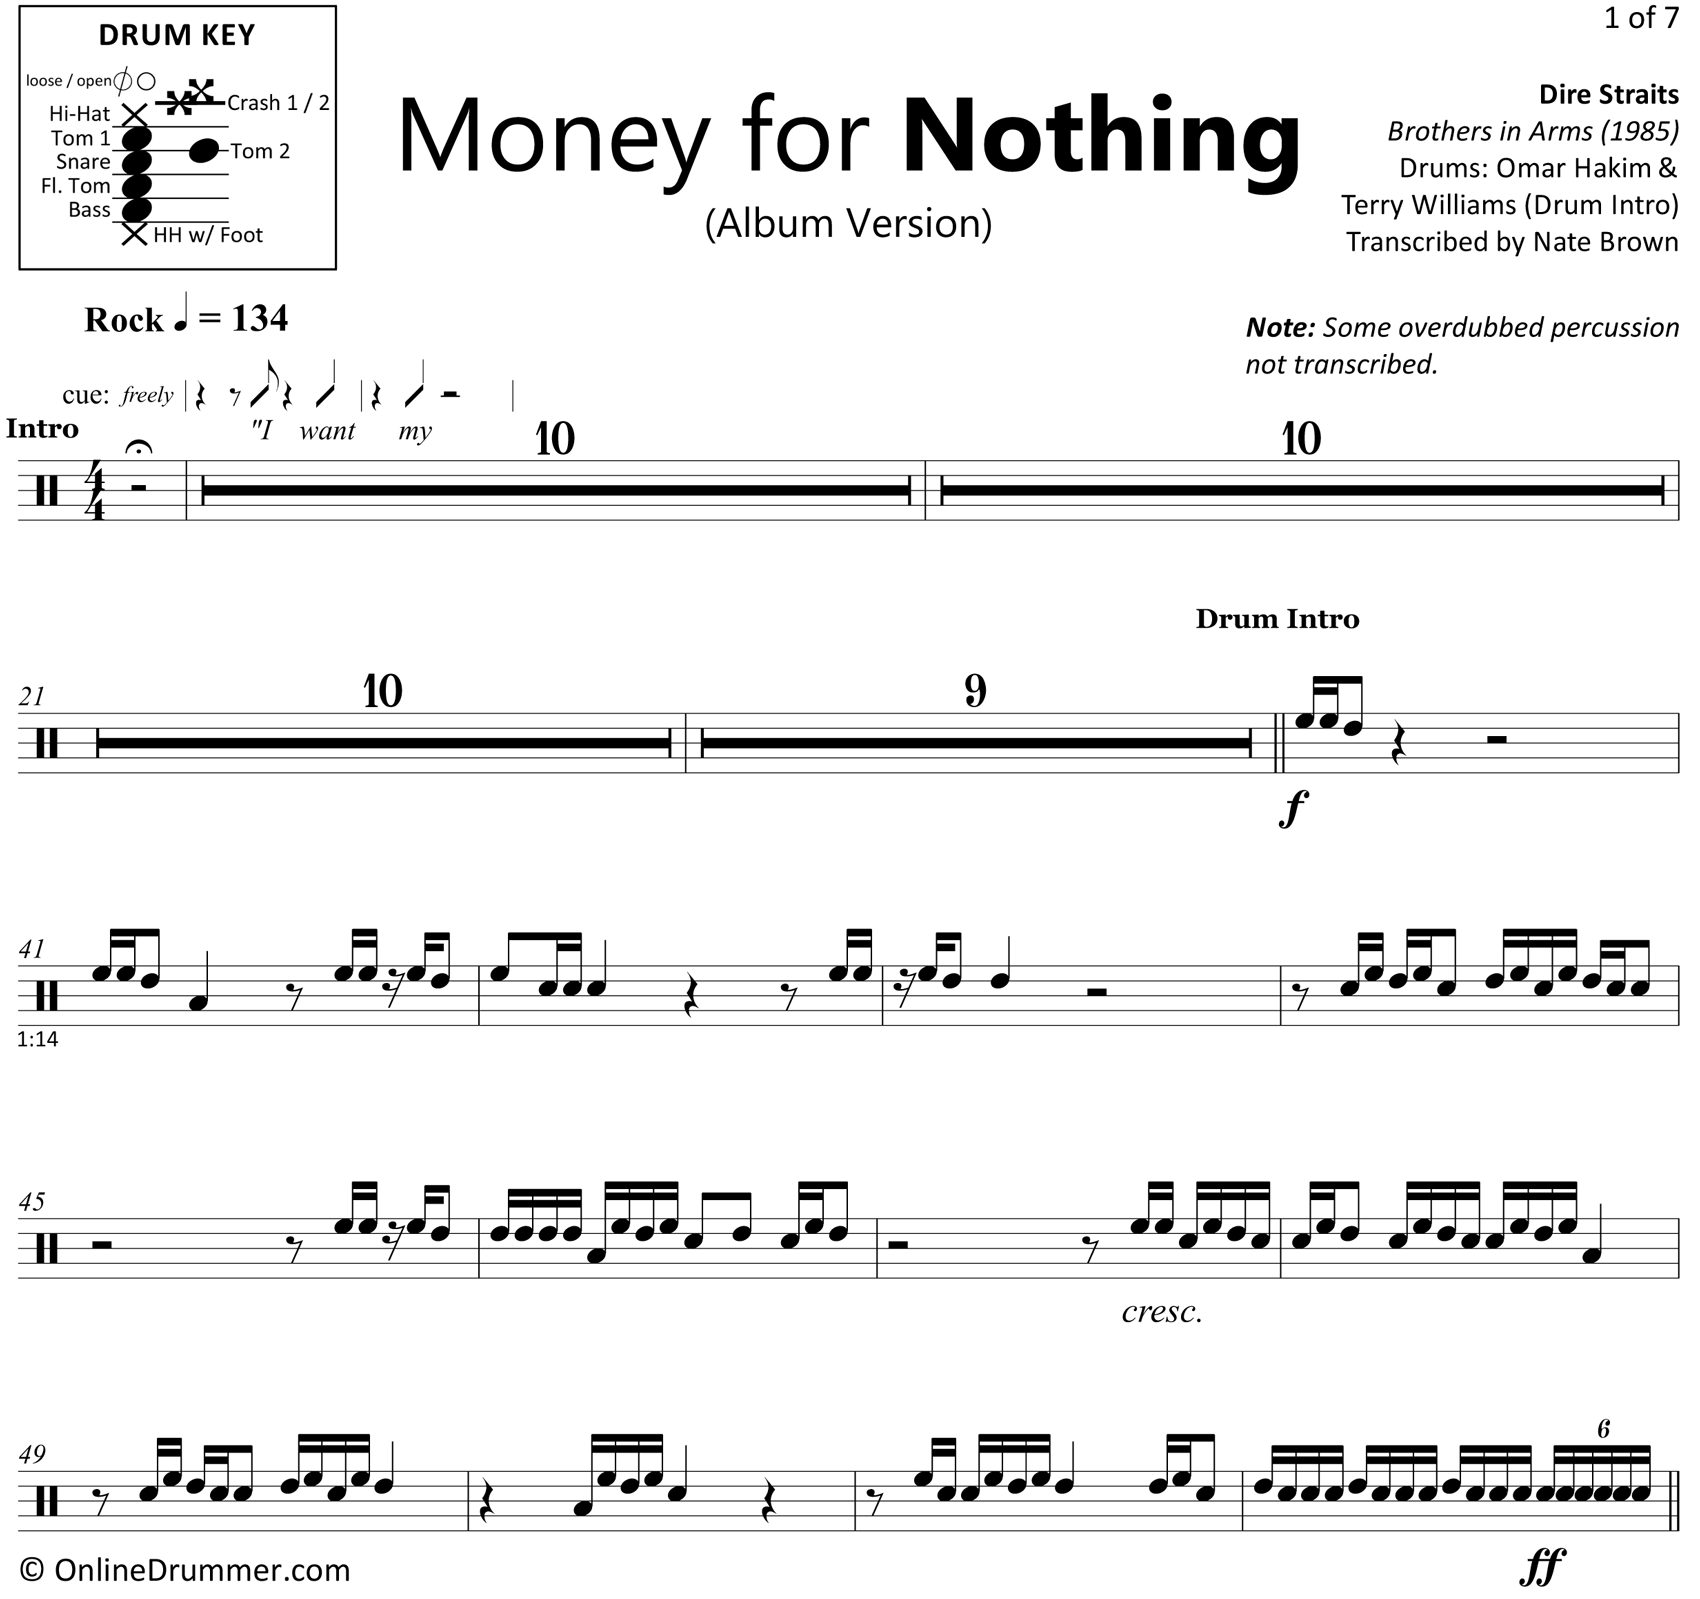 Money For Nothing - Dire Straits - Drum Sheet Music